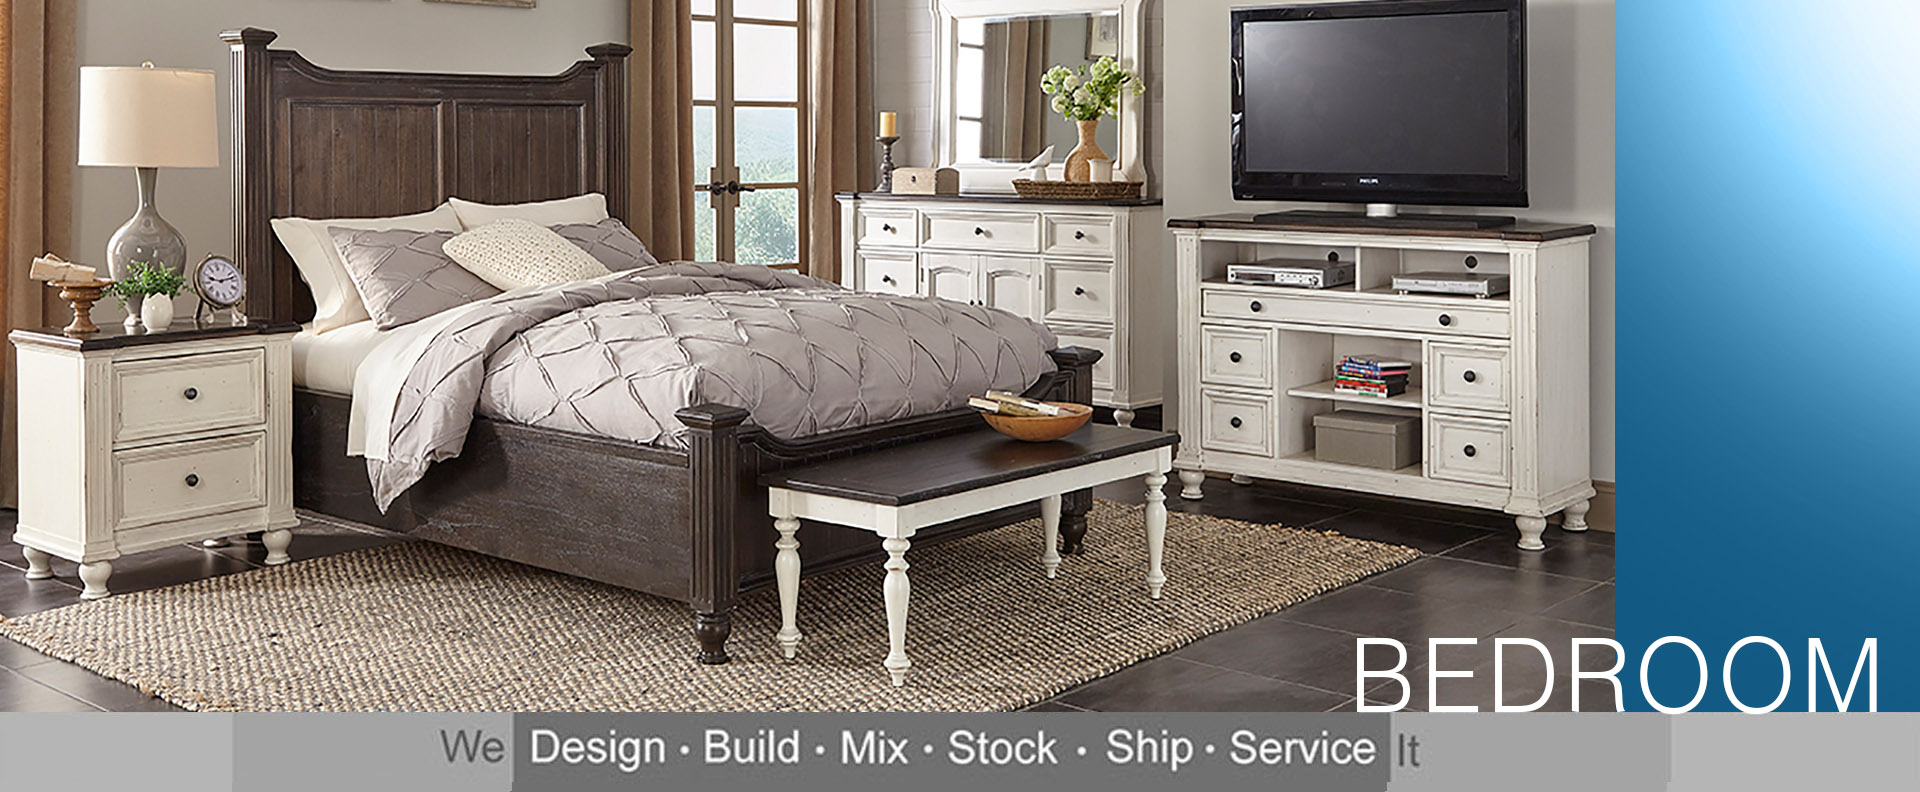 Bedroom Furniture Online Canada Sunny Designs Home